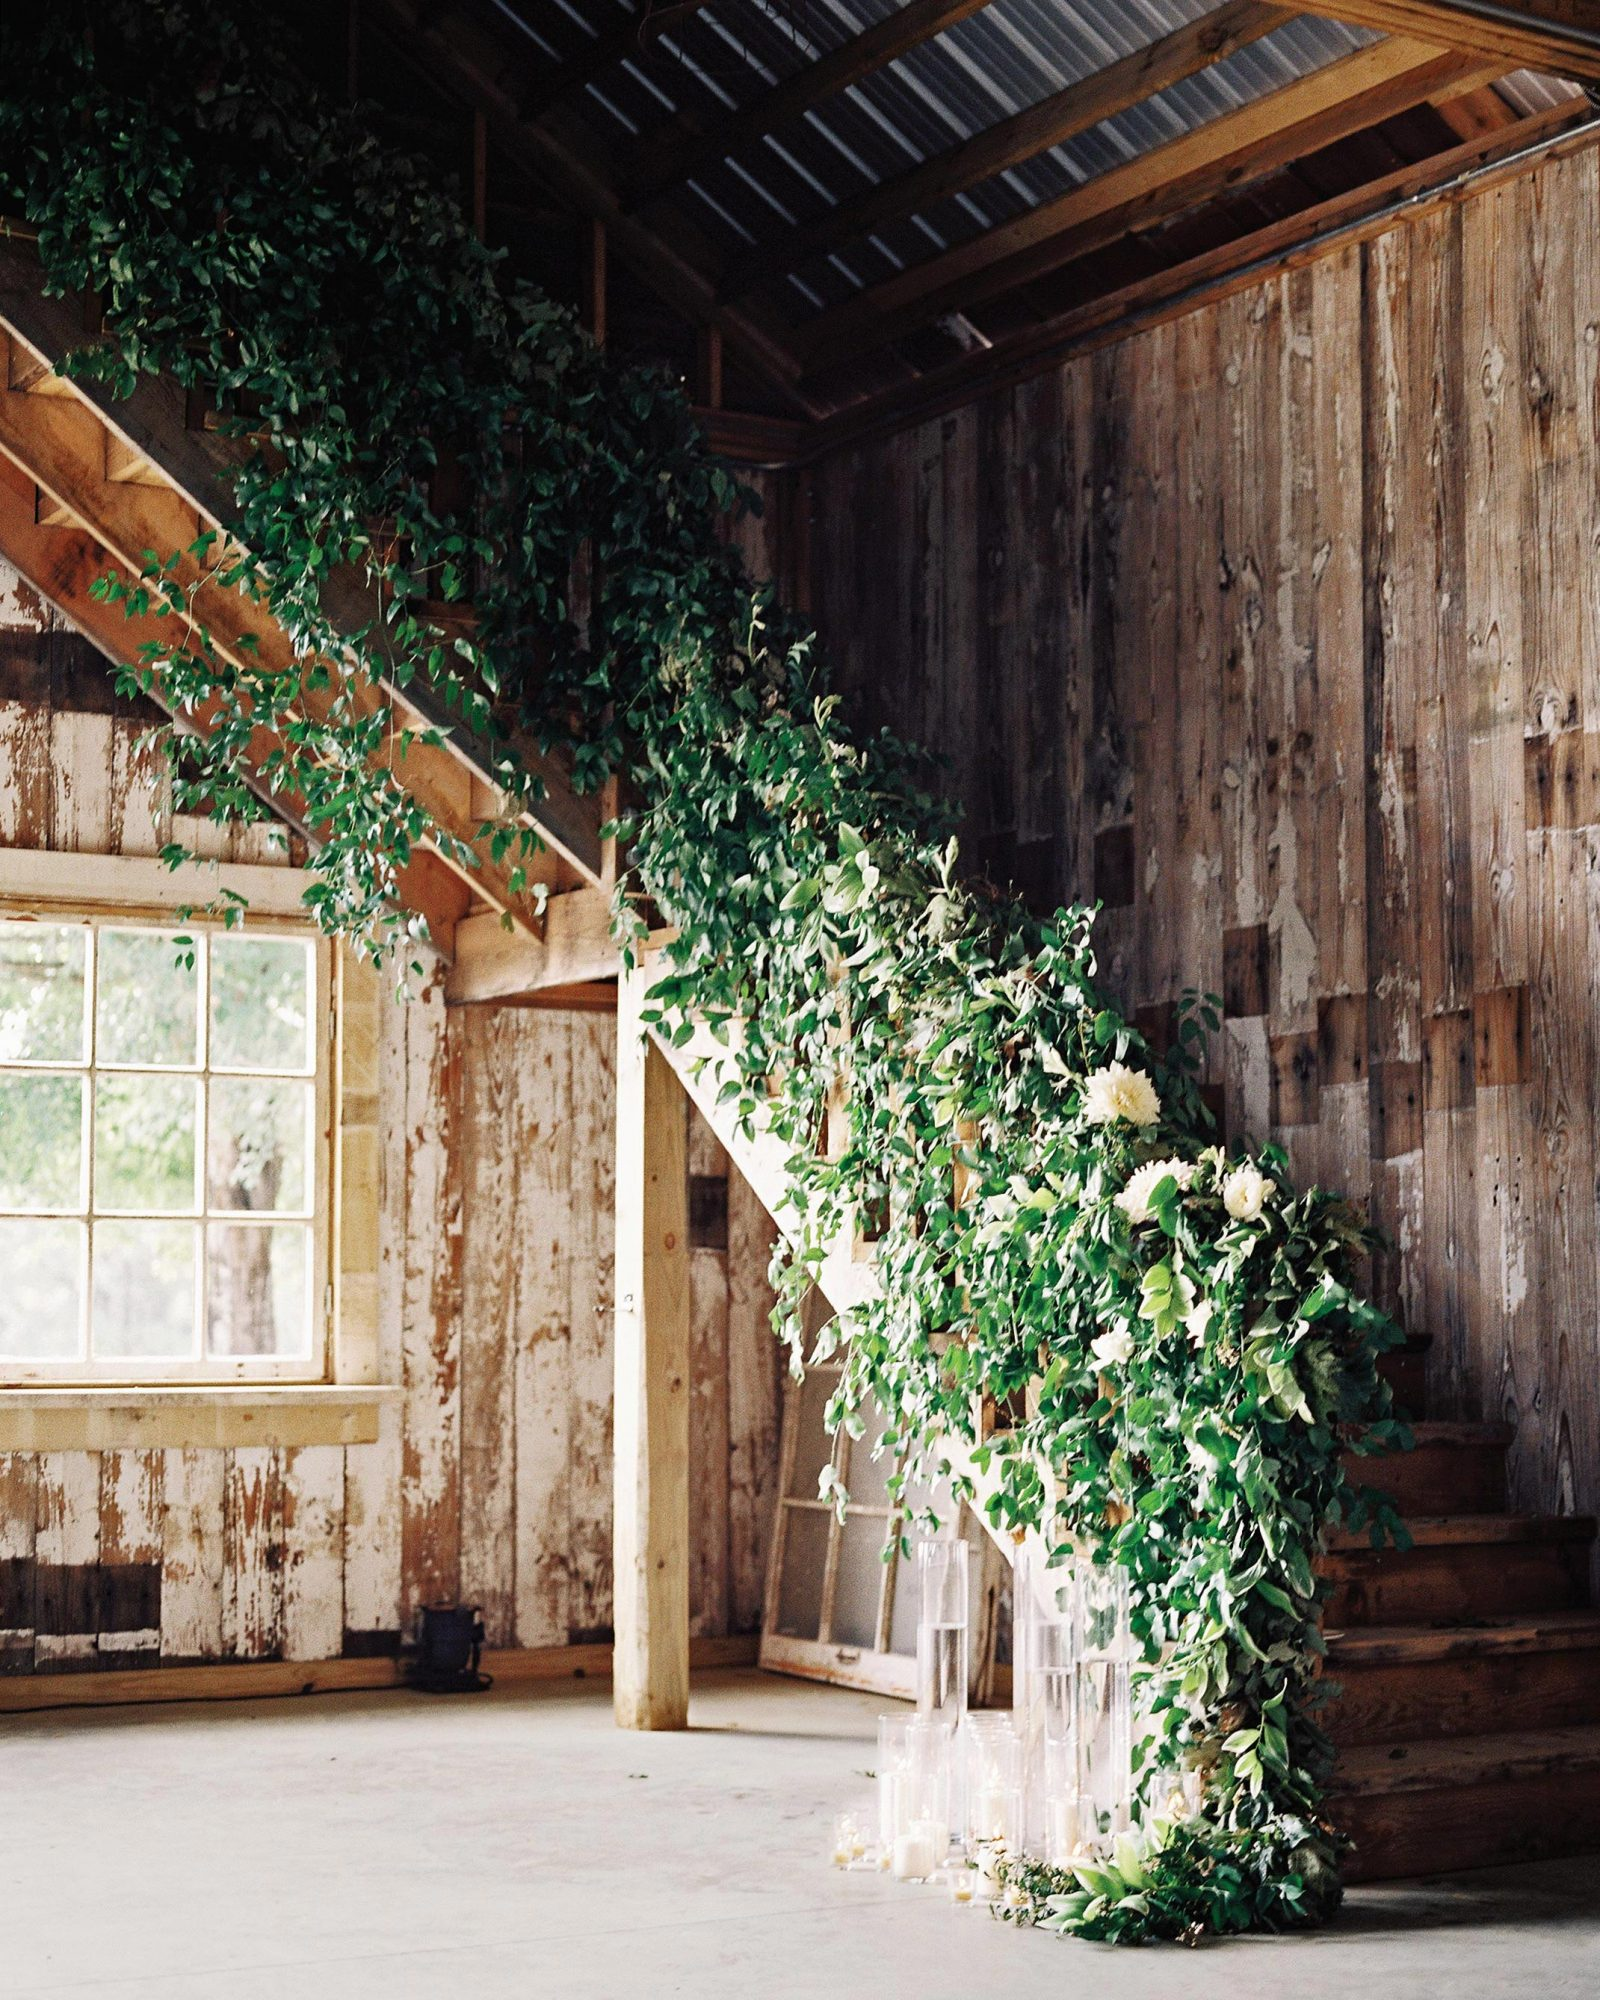 stephanie-mike-wedding-north-carolina-barn-staircase-floral-garland-11-s112048.jpg